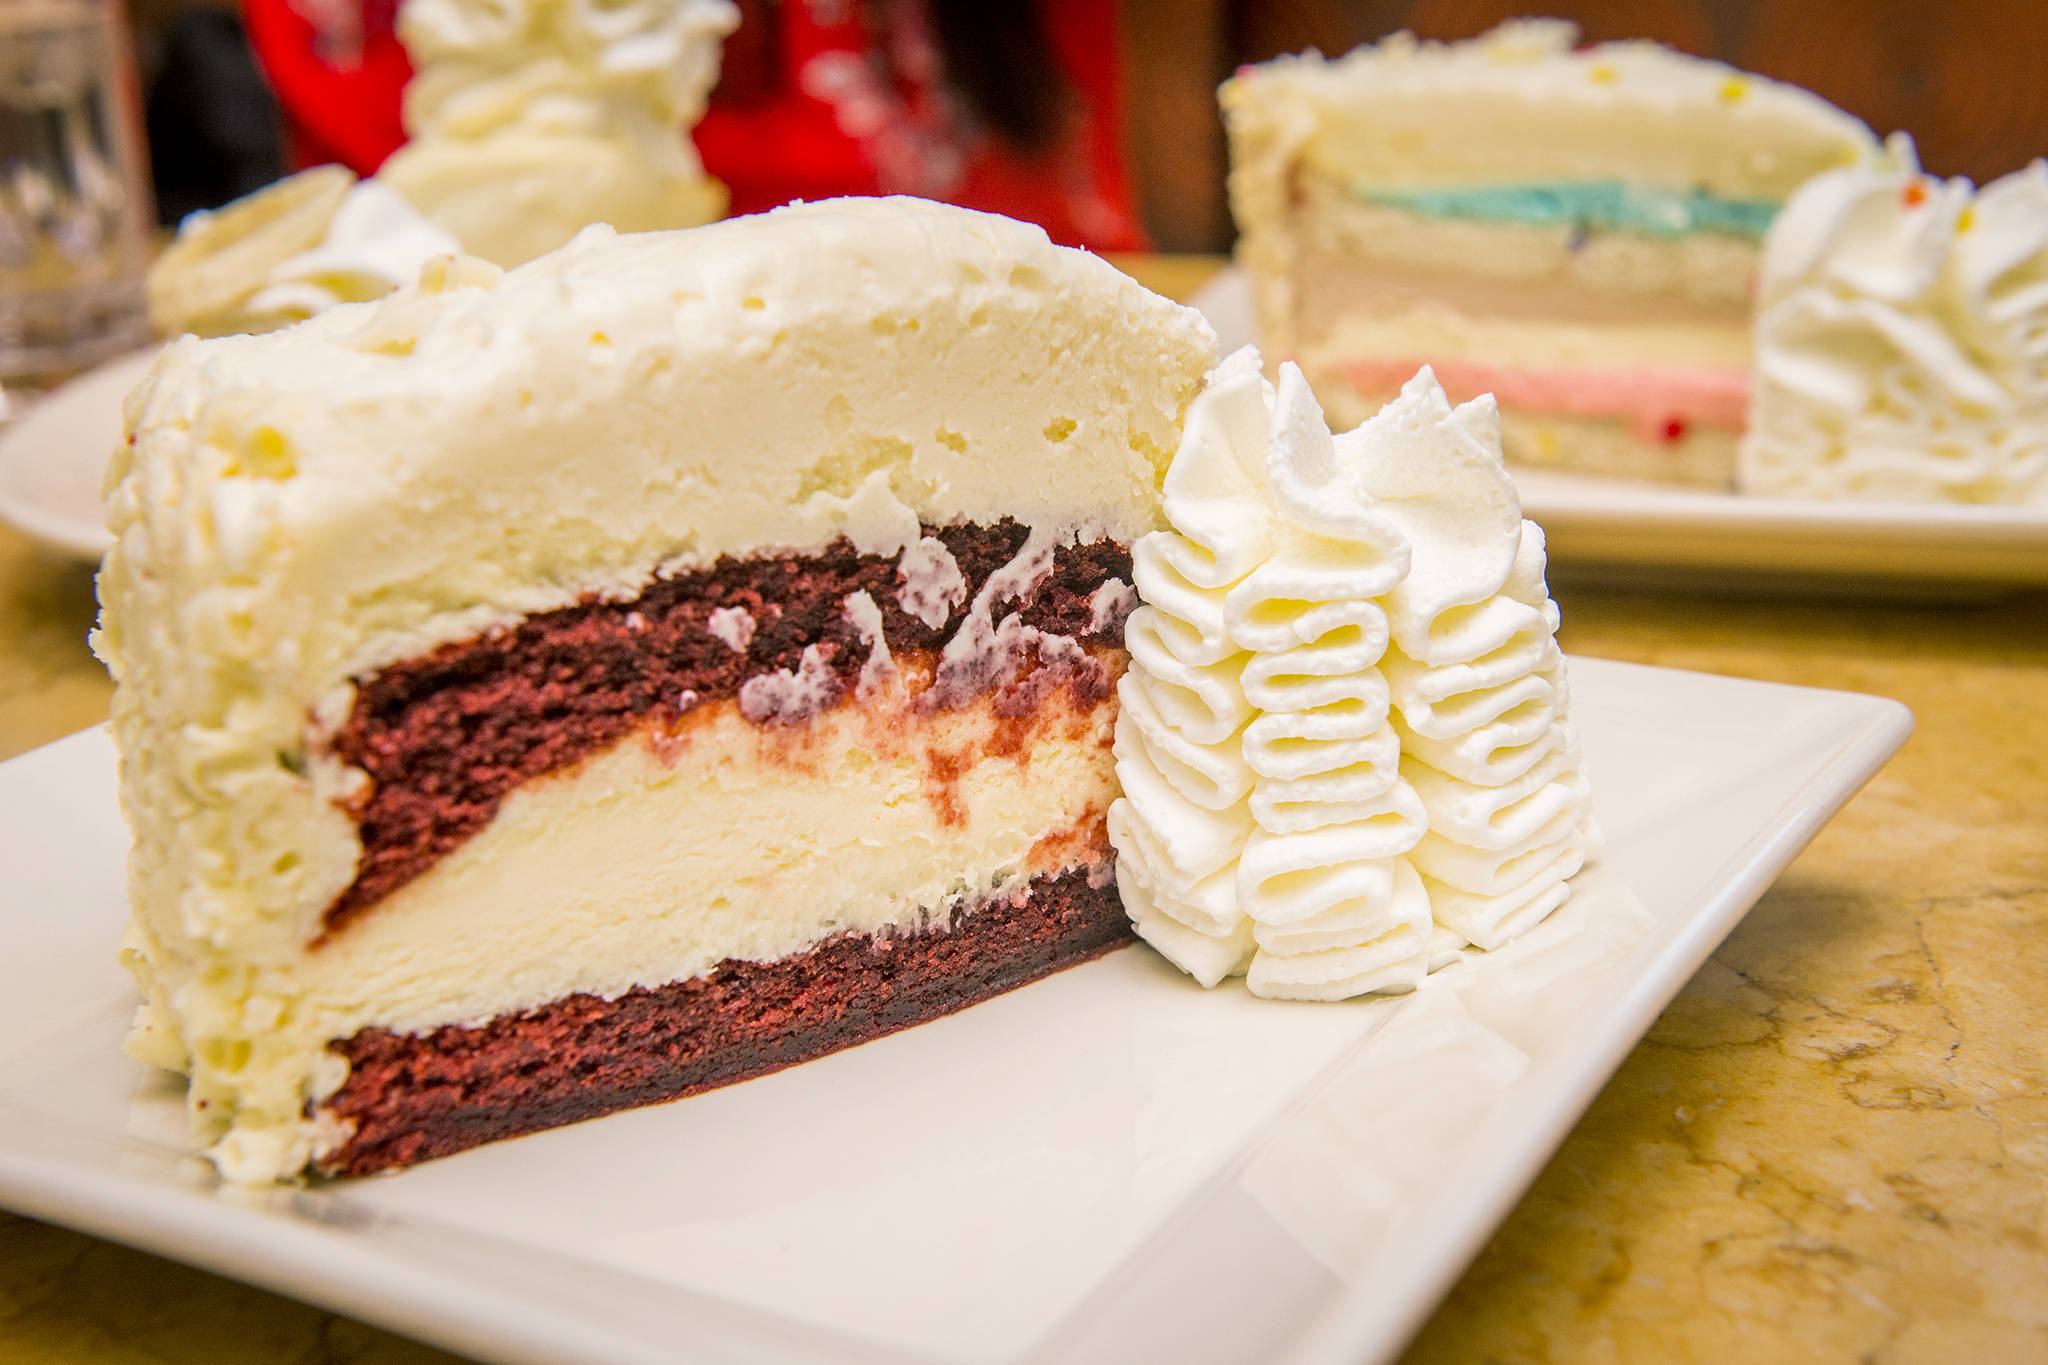 cheescake factory The cheesecake factory, aventura: see 2,147 unbiased reviews of the cheesecake factory, rated 45 of 5 on tripadvisor.